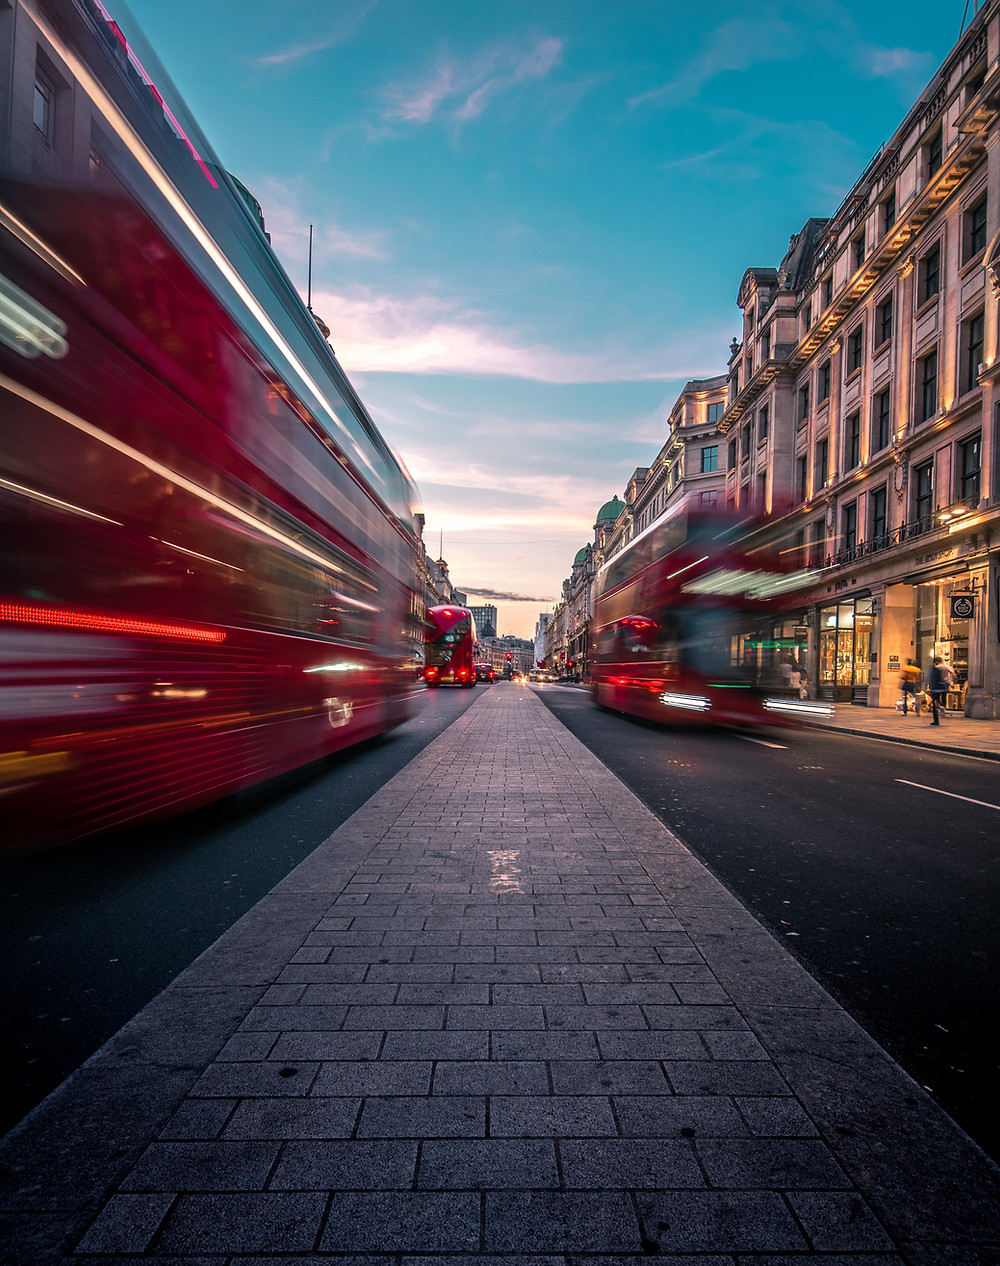 Land for sale, development sites for sale, development site wanted, London Zone 2, London Zone 3, sell you land, sell your site, sell off-market